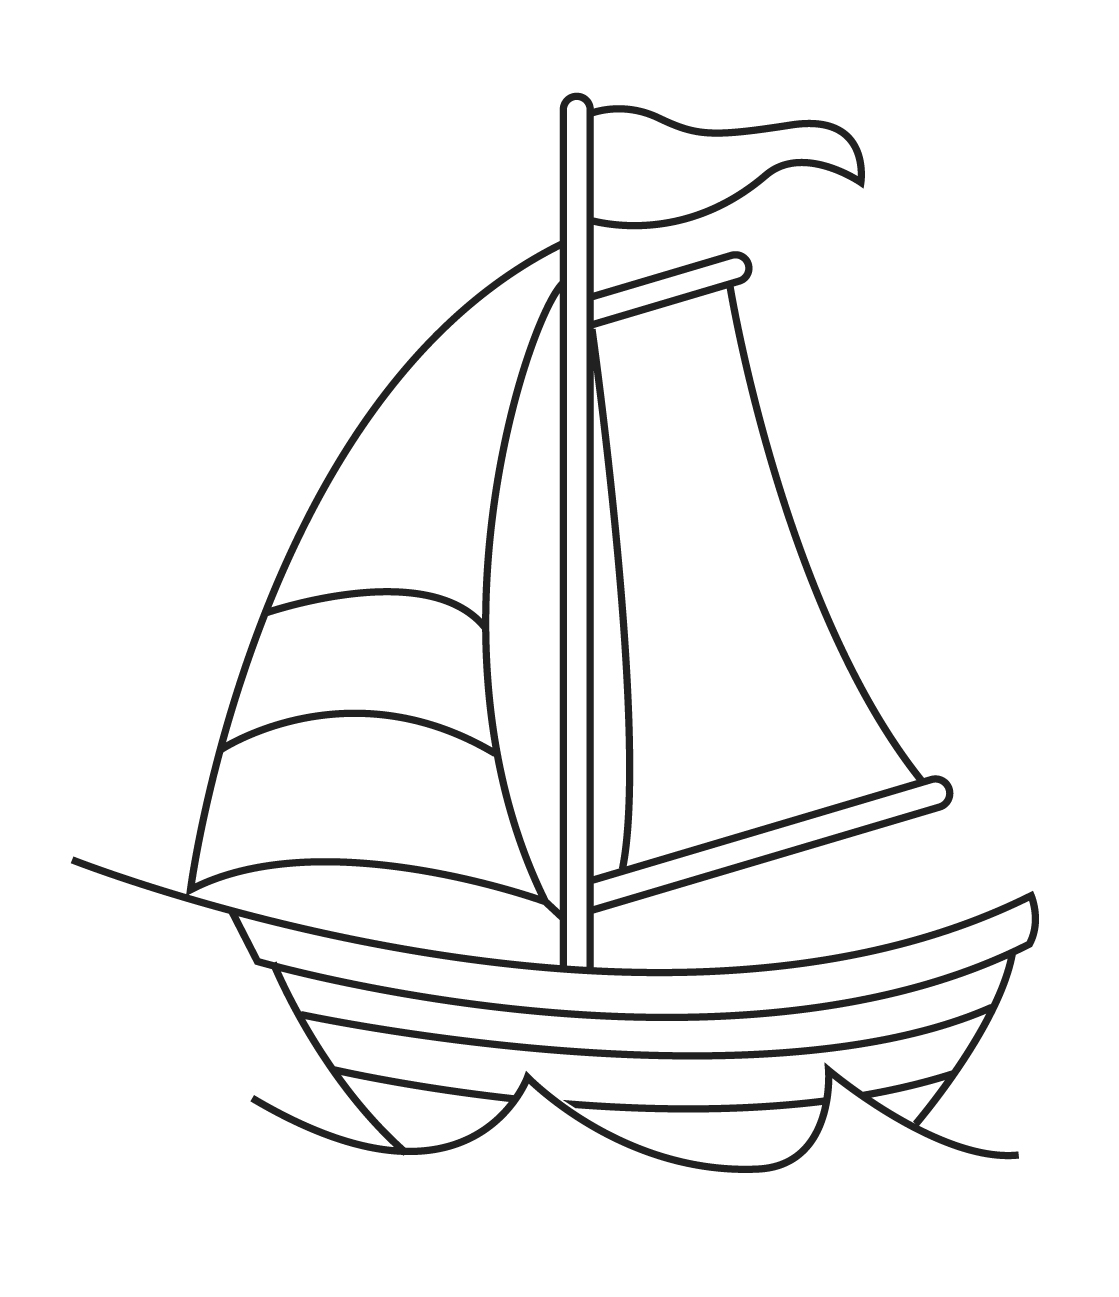 Line Art Boat : Sailboat line drawing clipart best